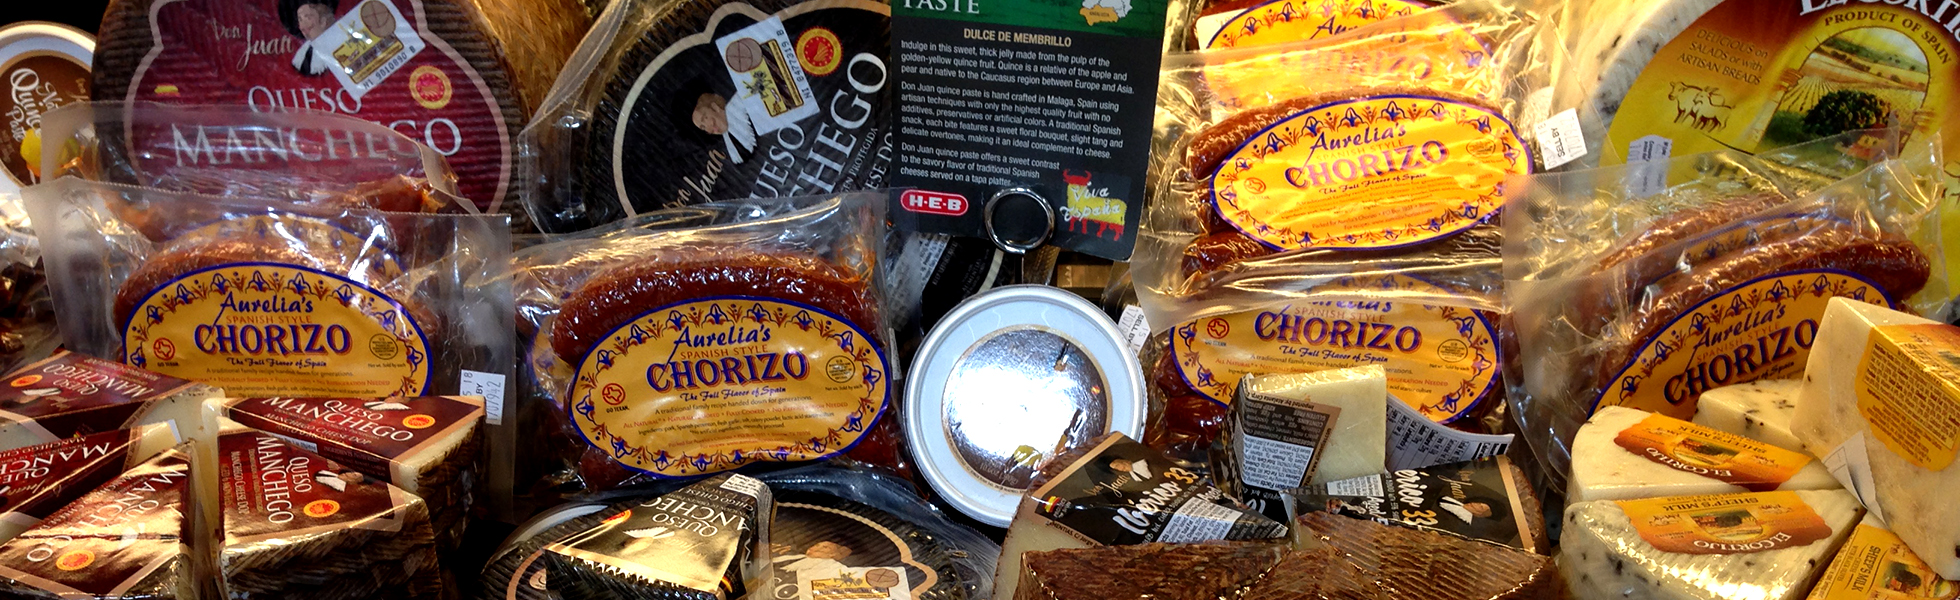 Find Aurelia's Chorizo in the Deli Department along with other Spanish products at your favorite grocer.